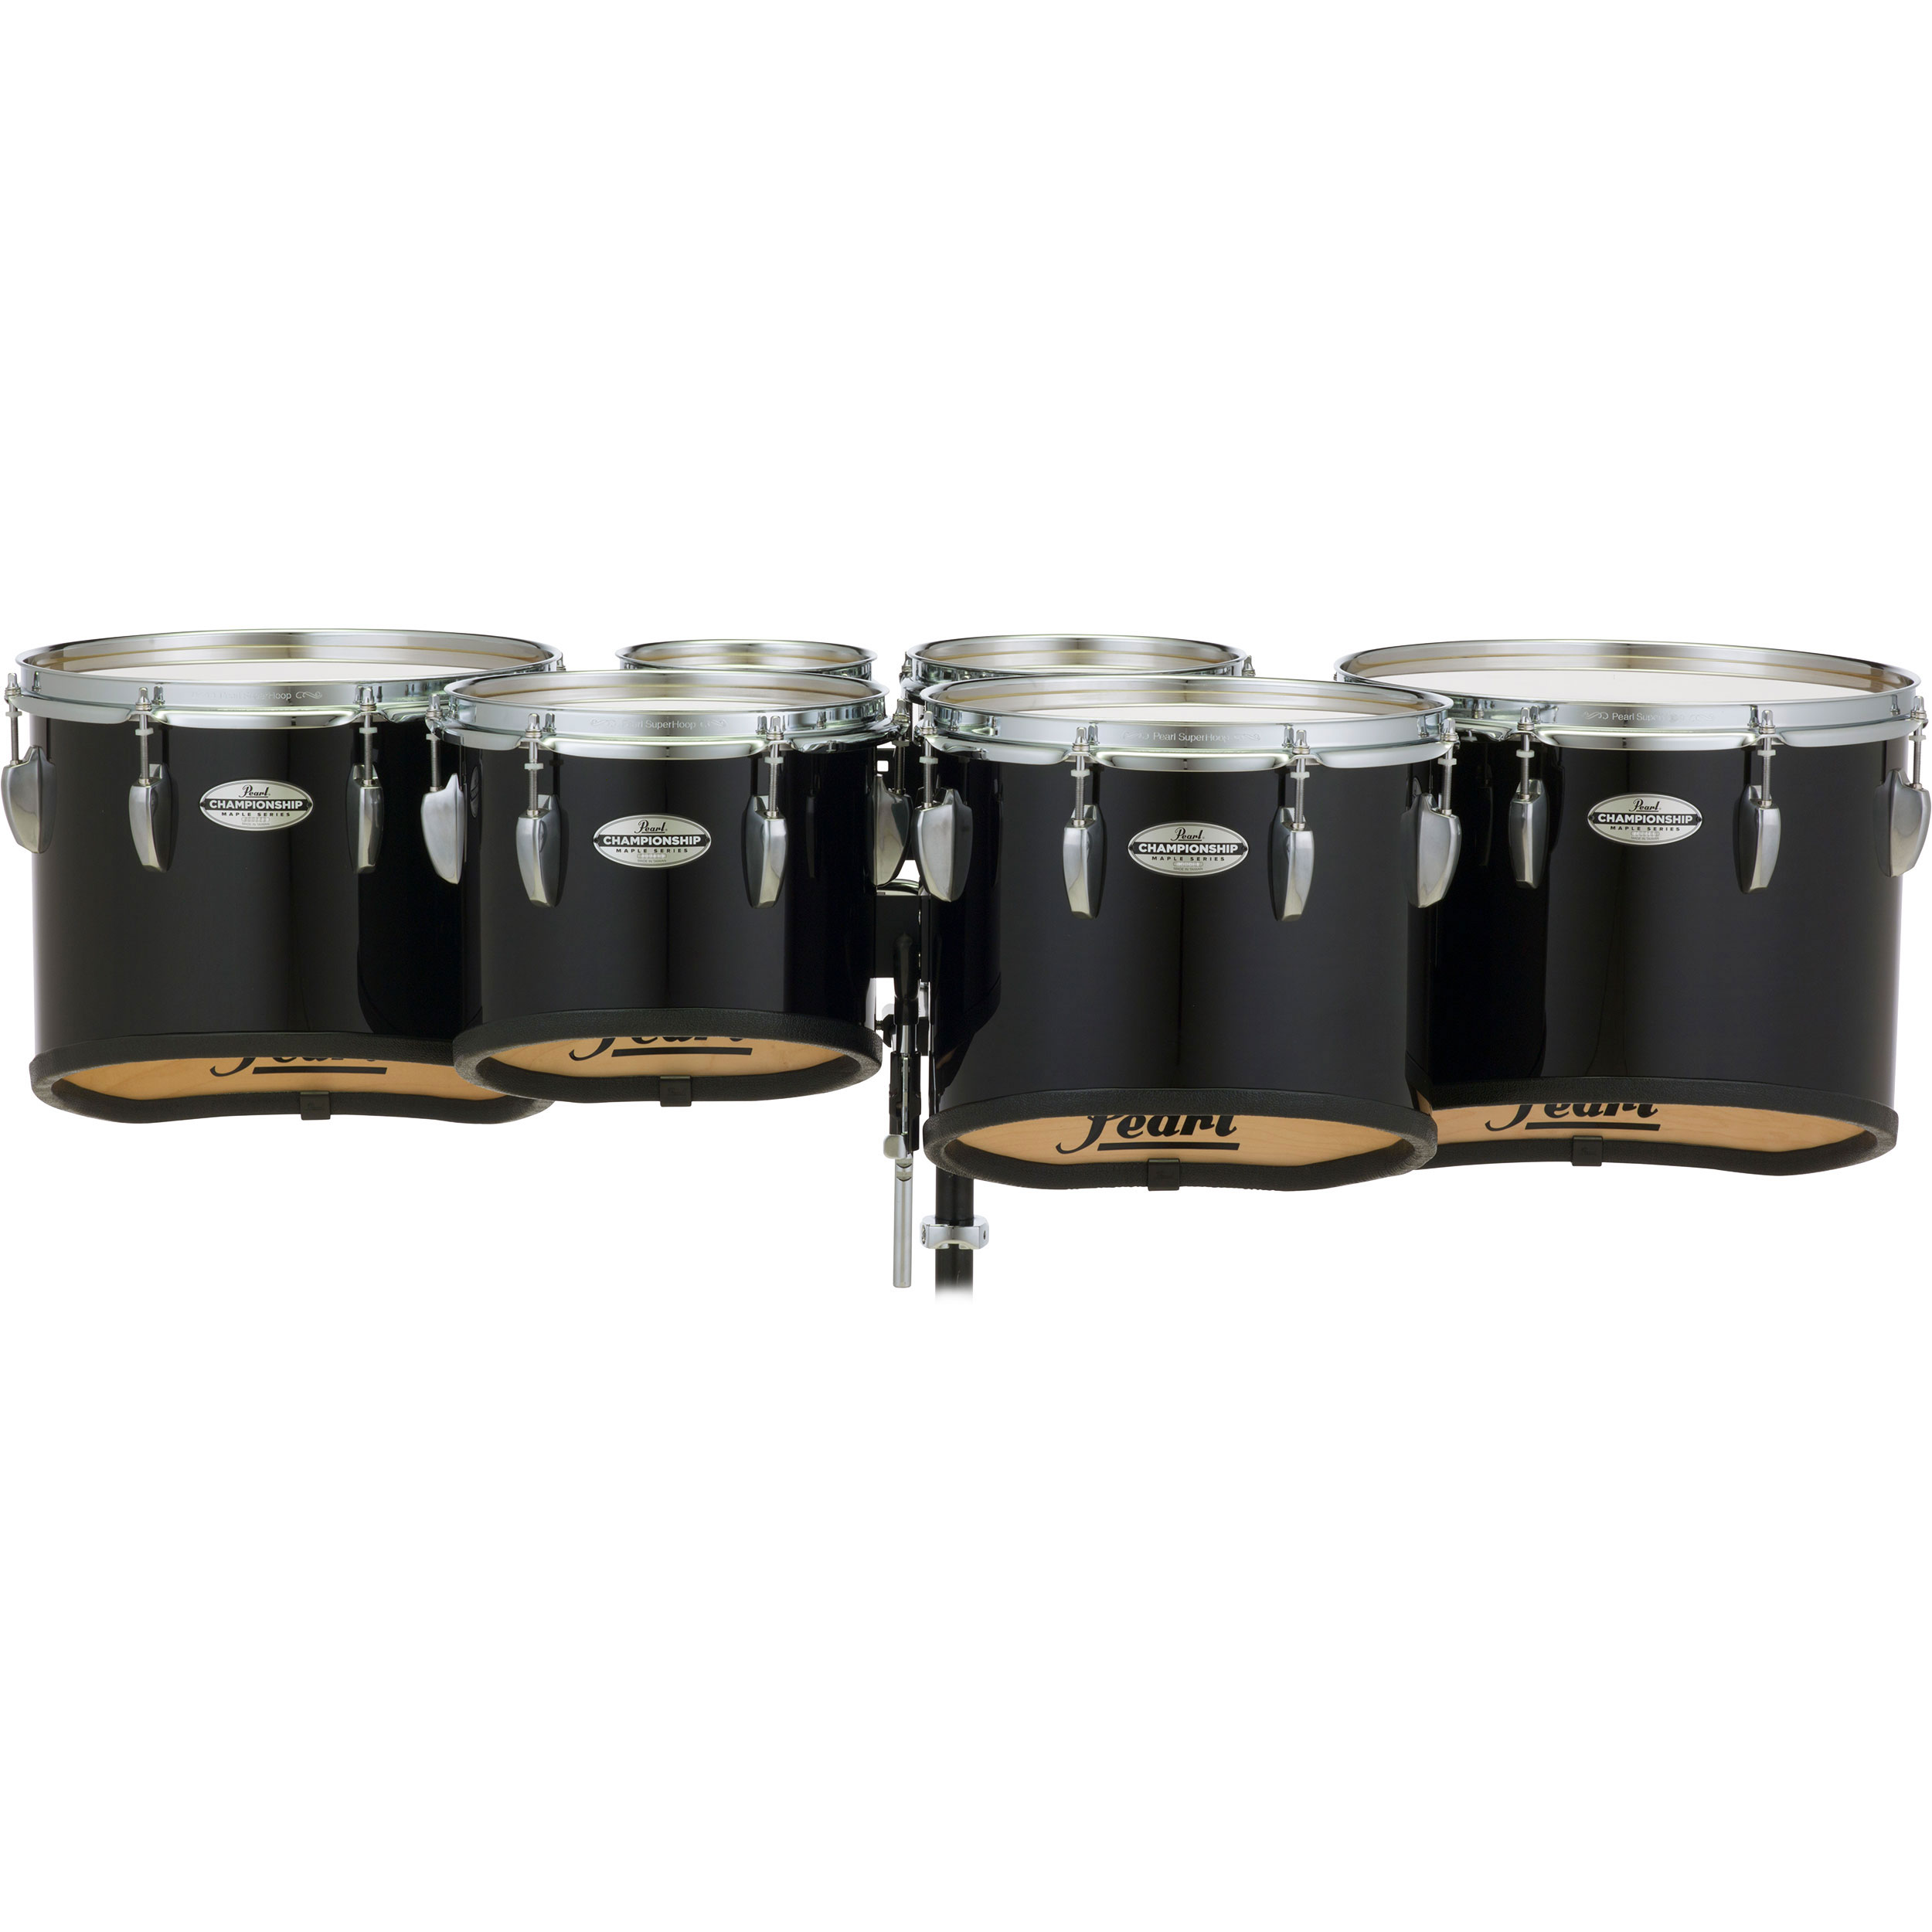 "Pearl 6-6-8-10-12-13"" PMTM Championship Maple Marching Tenors in Wrap Finish"